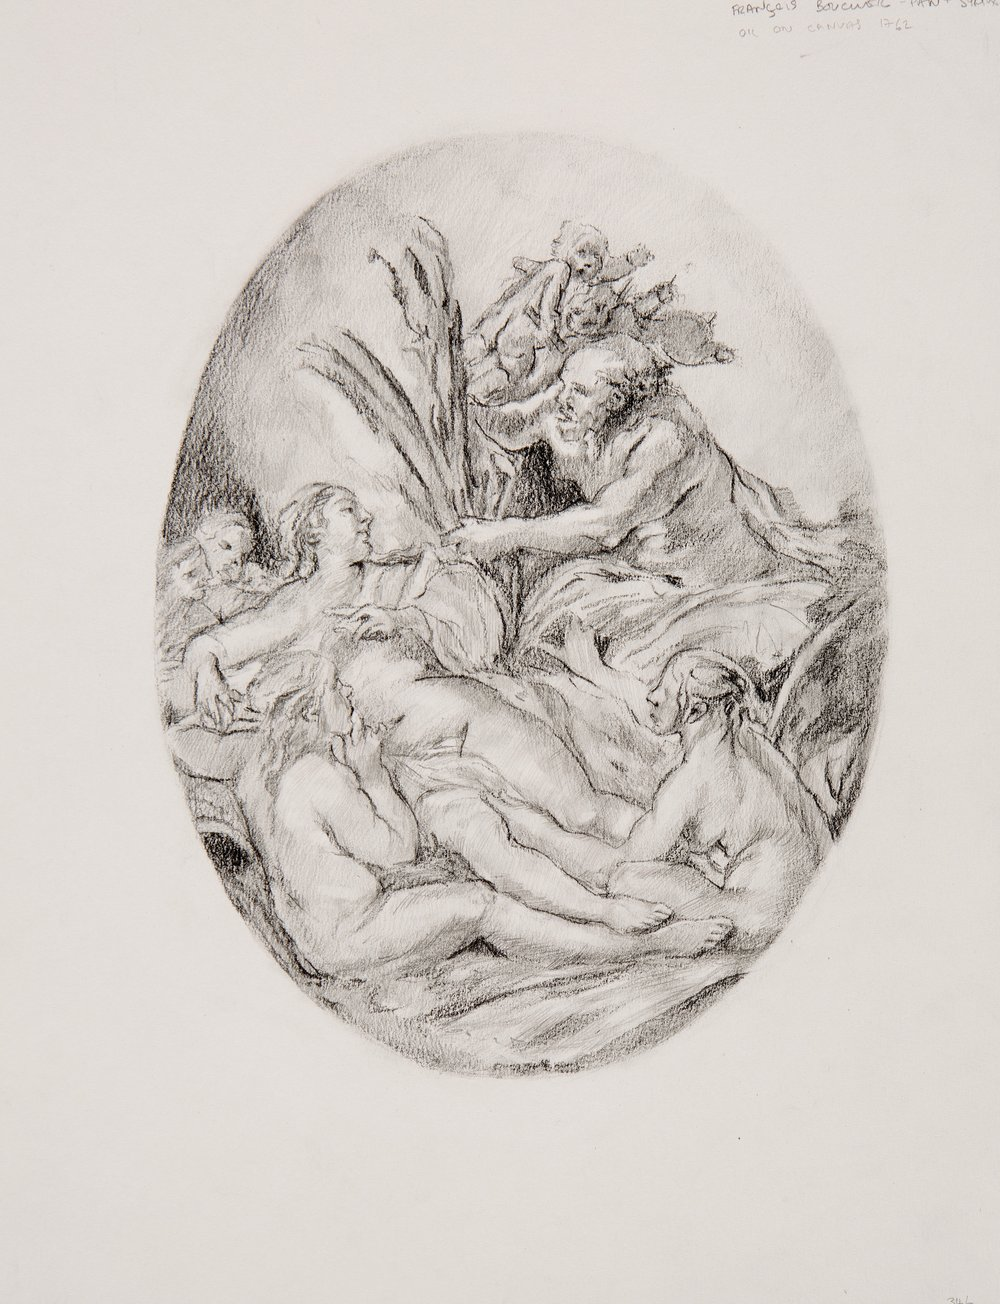 2015 - Study after 'Pan and Syrinx,' 1760 - 1765, François Boucher